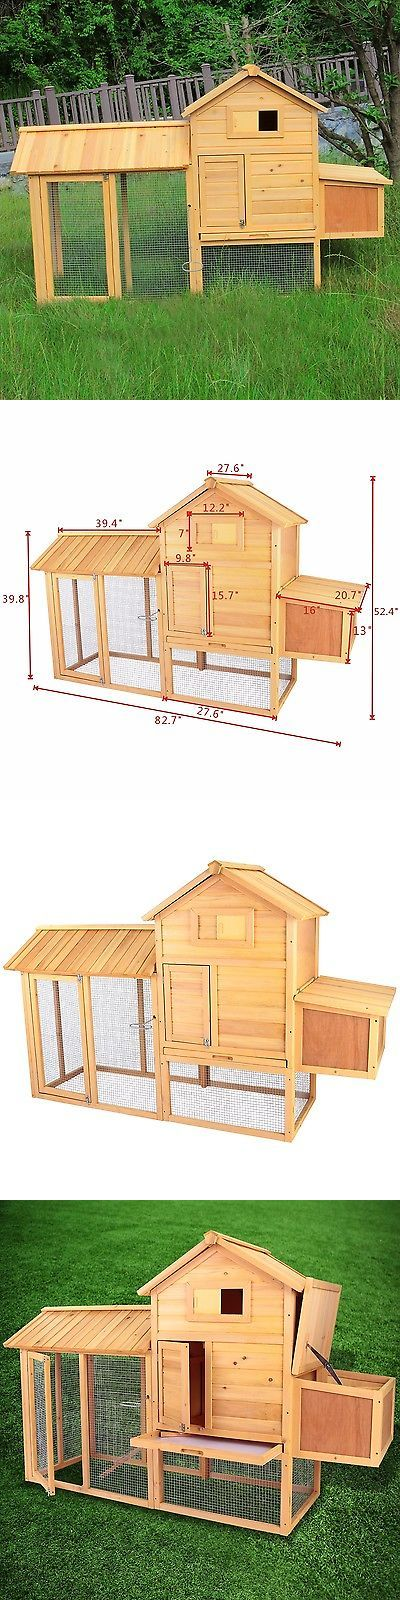 Backyard Poultry Supplies 177801: Wooden 83 Hen House Chicken Coop Rabbit Hutch Pet Animal Poultry W/Nest Cage BUY IT NOW ONLY: $159.9